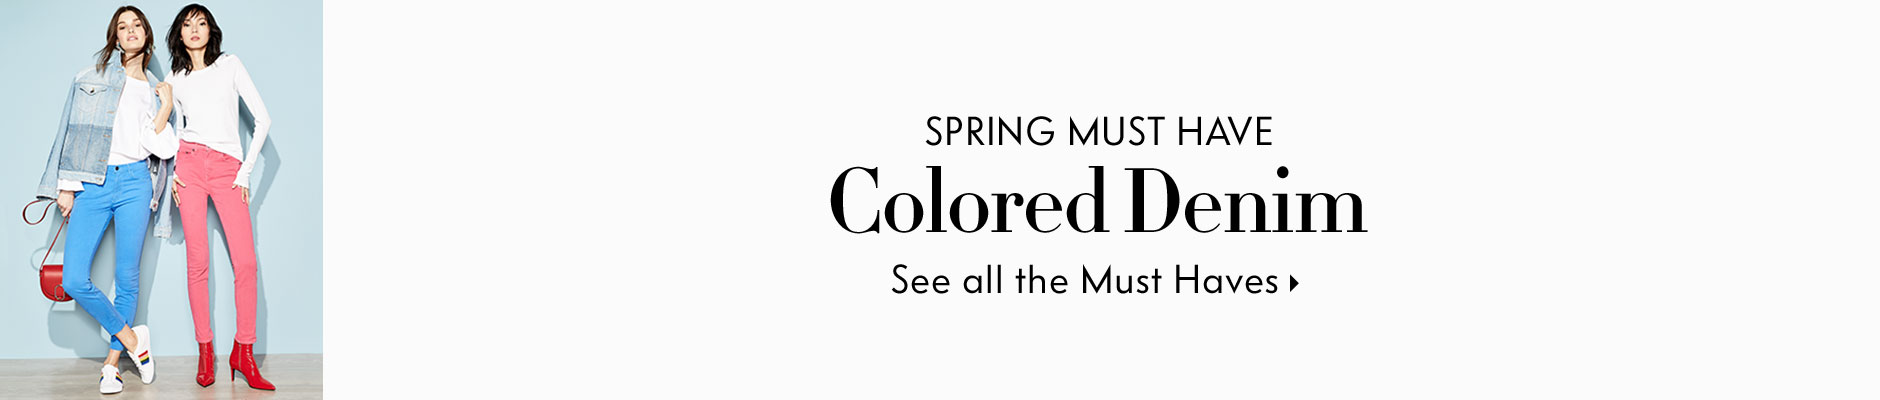 Spring Must Have Colored Denim - See all the Must Haves